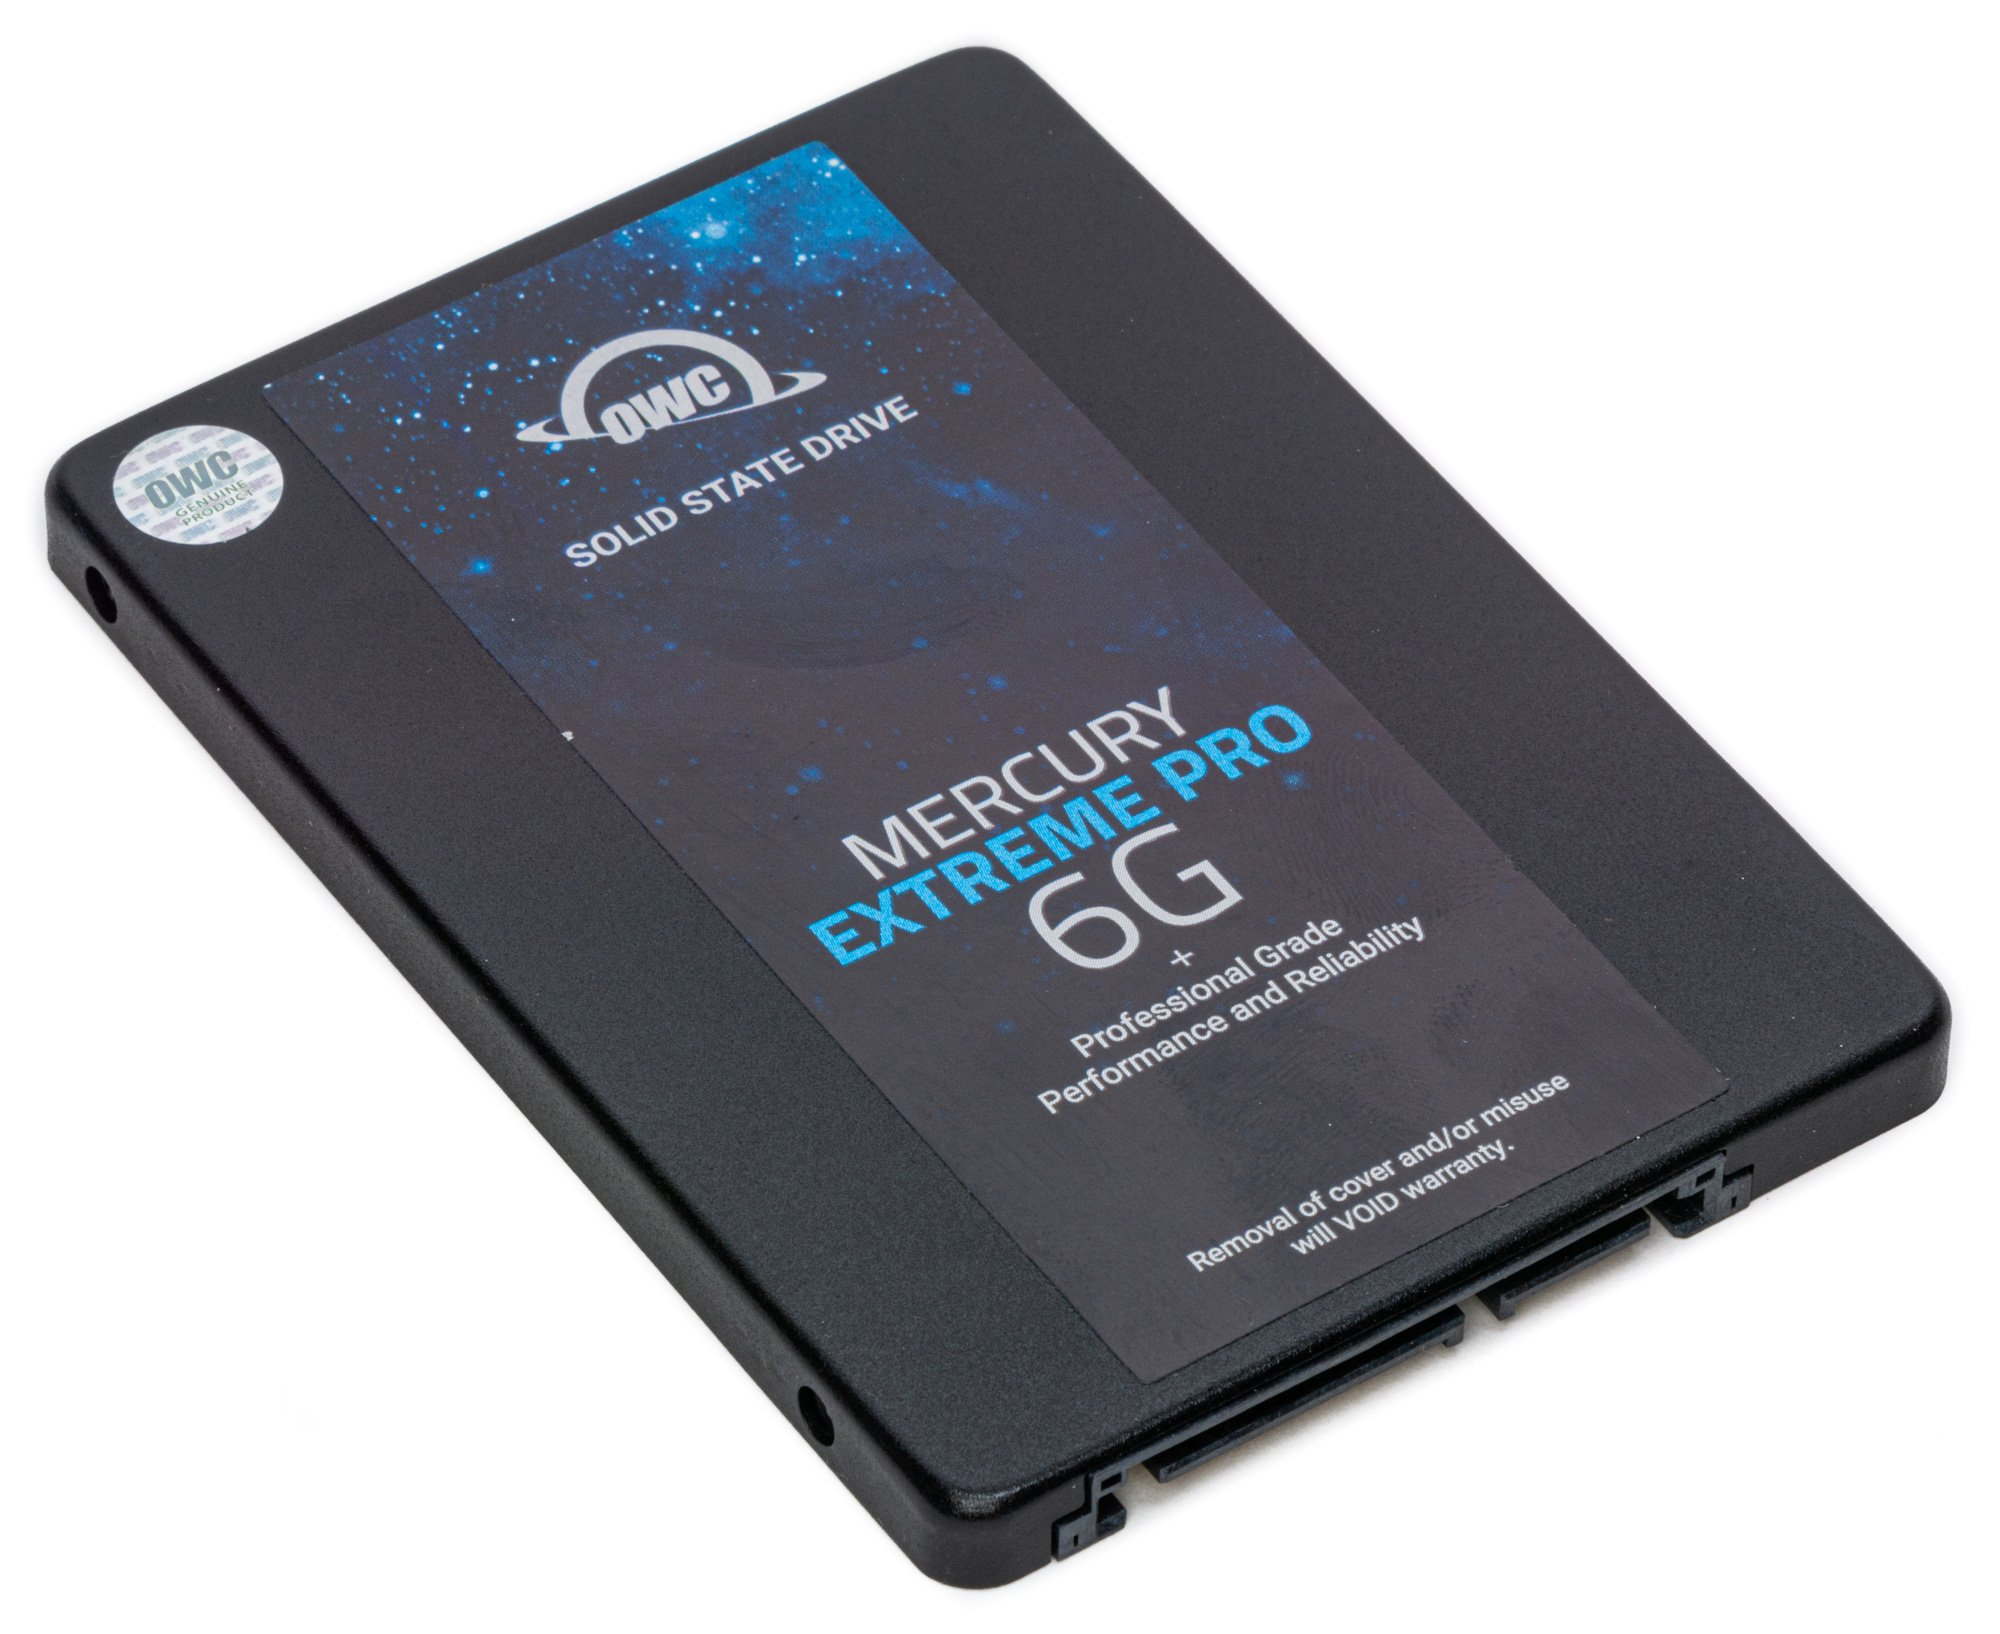 OWC OWCS3D7P6G480 Mercury Extreme Pro 6G SSD - 480GB Drive - Bstock (Open/Used) OWC-S3D7P6G48-BS